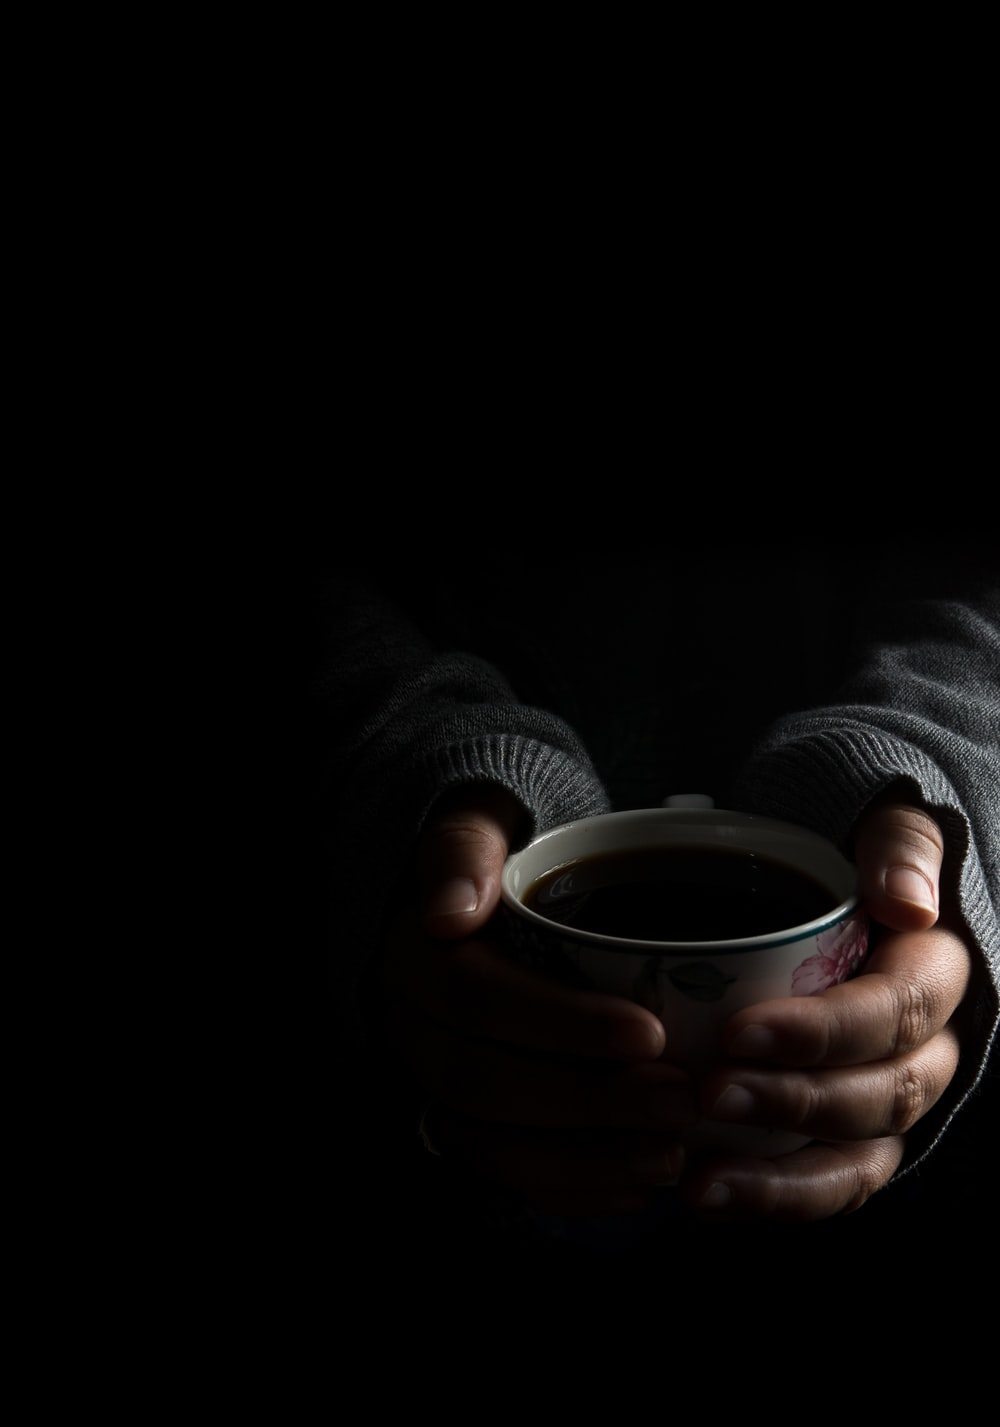 person in grey sweater holding cup with both hands